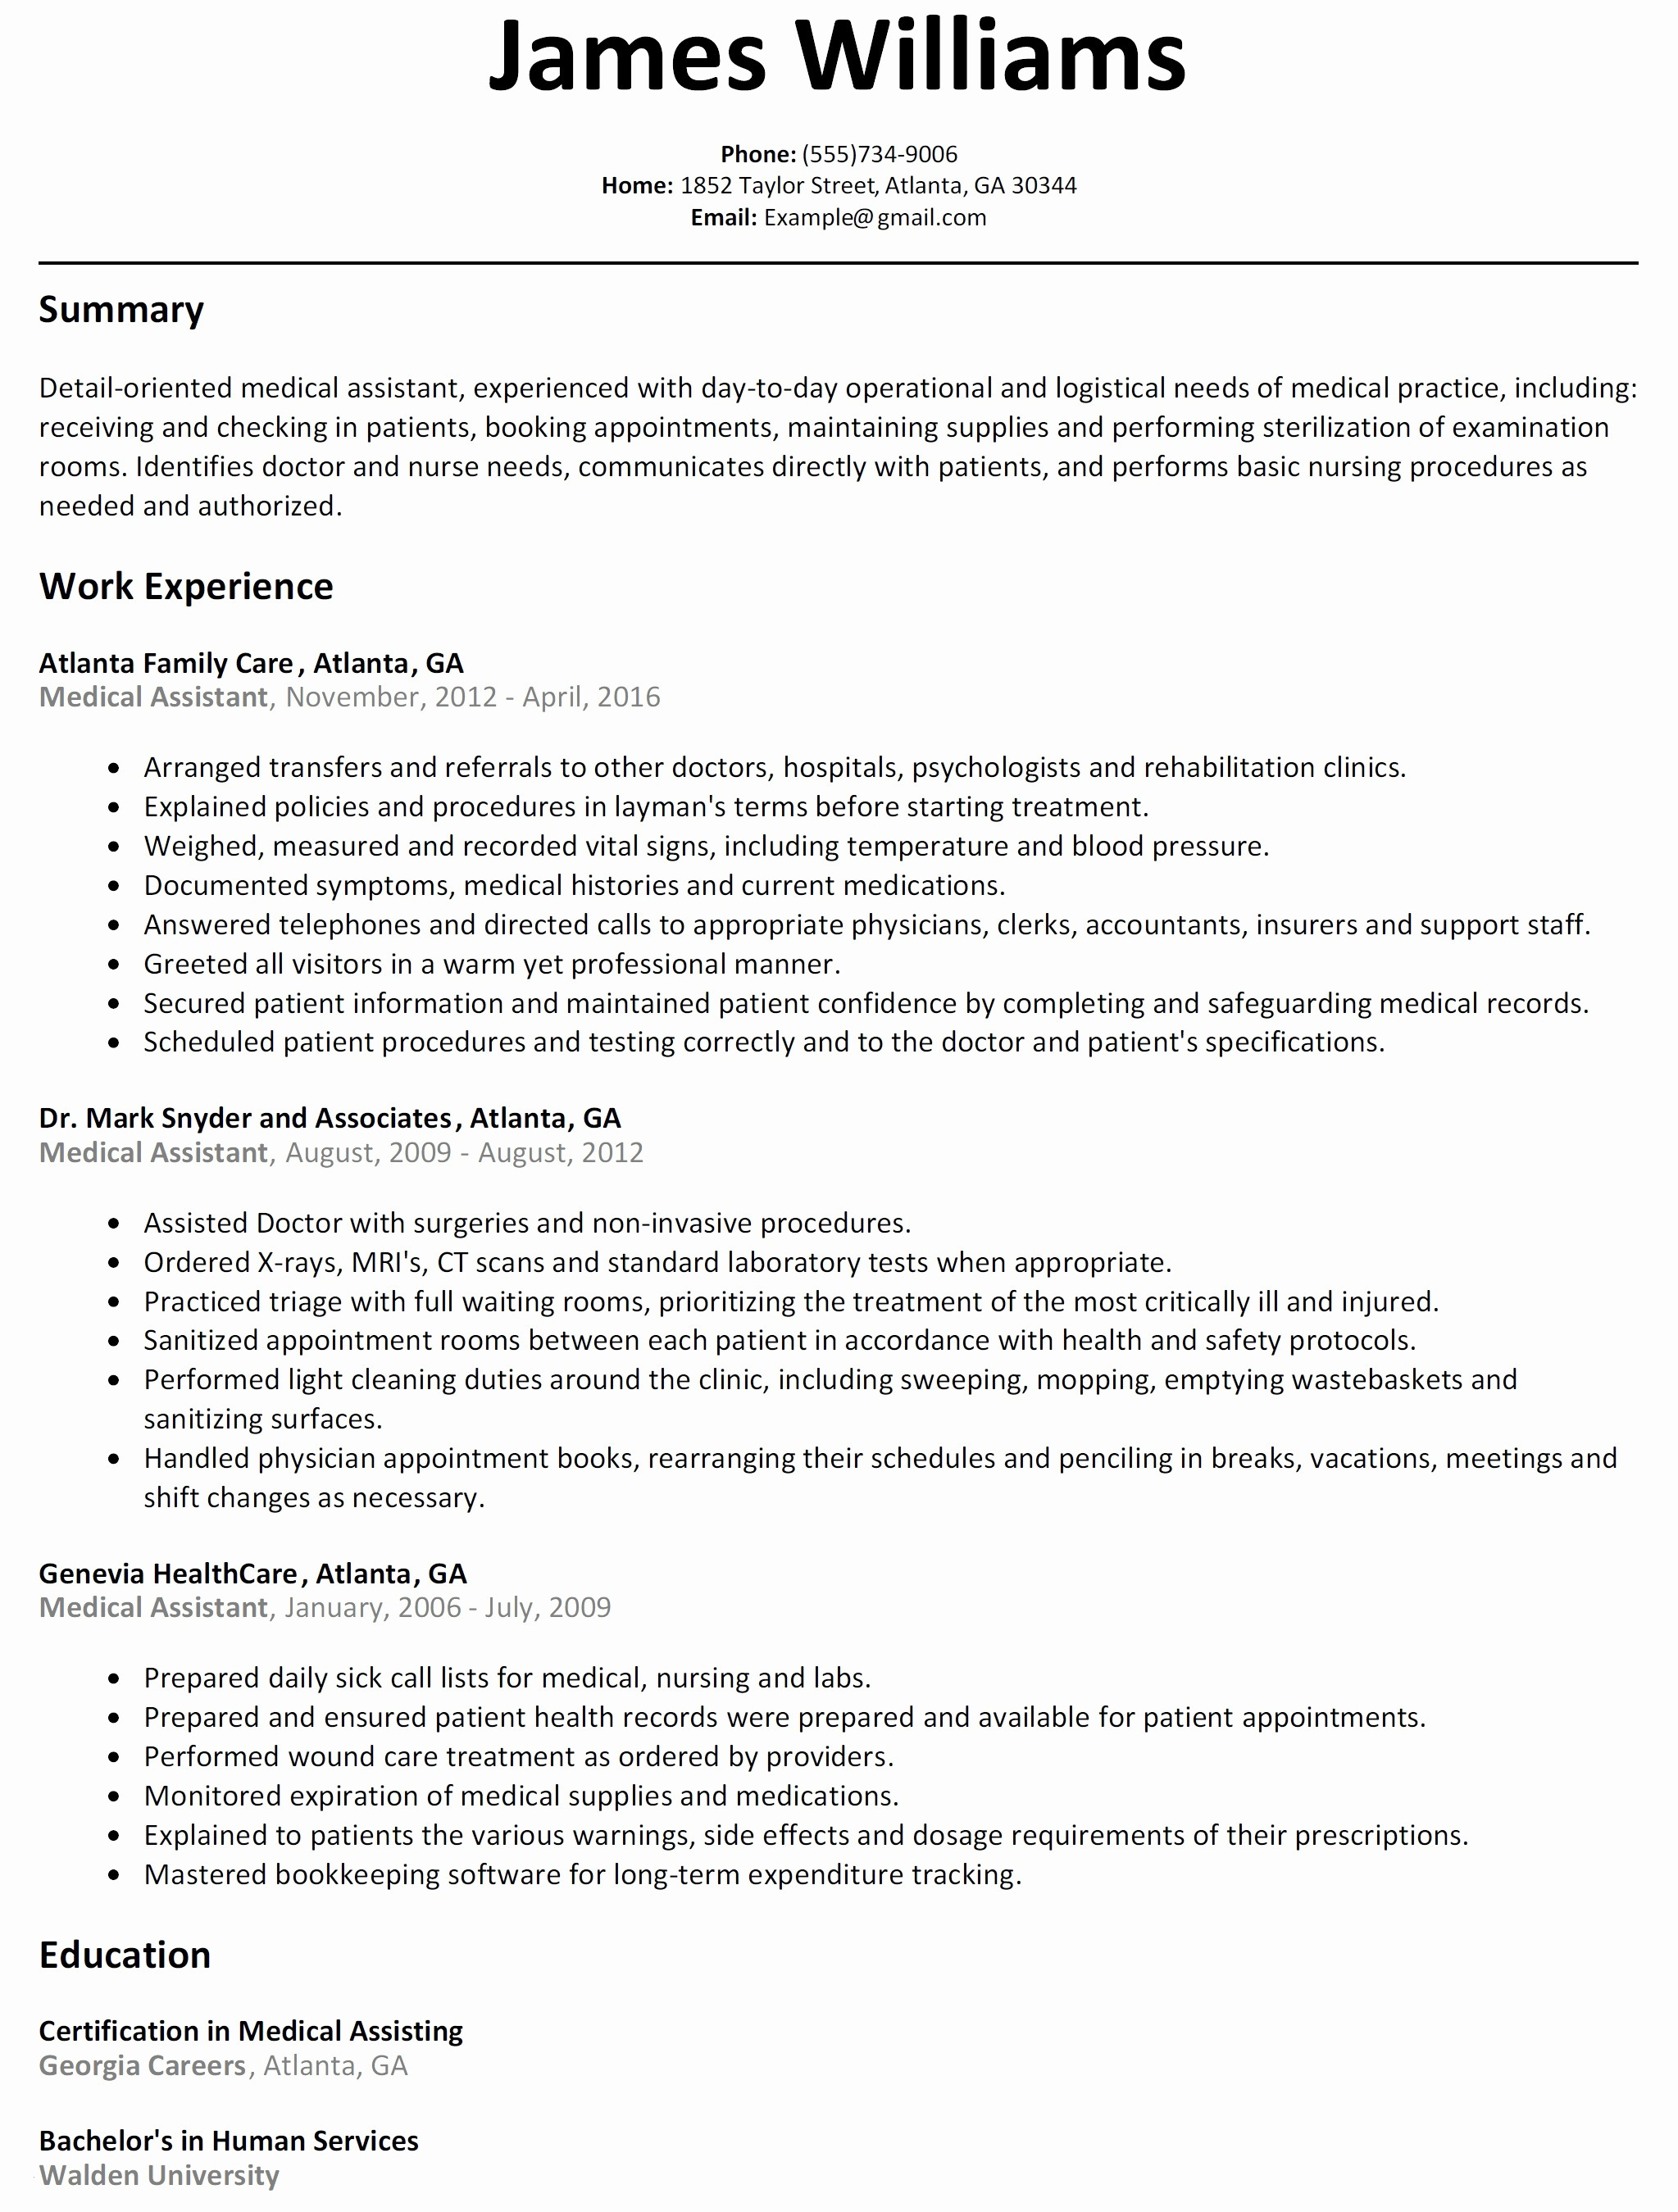 Nursing Resume Template Microsoft Word - Interesting Resume format Awesome Simple Resume format In Word